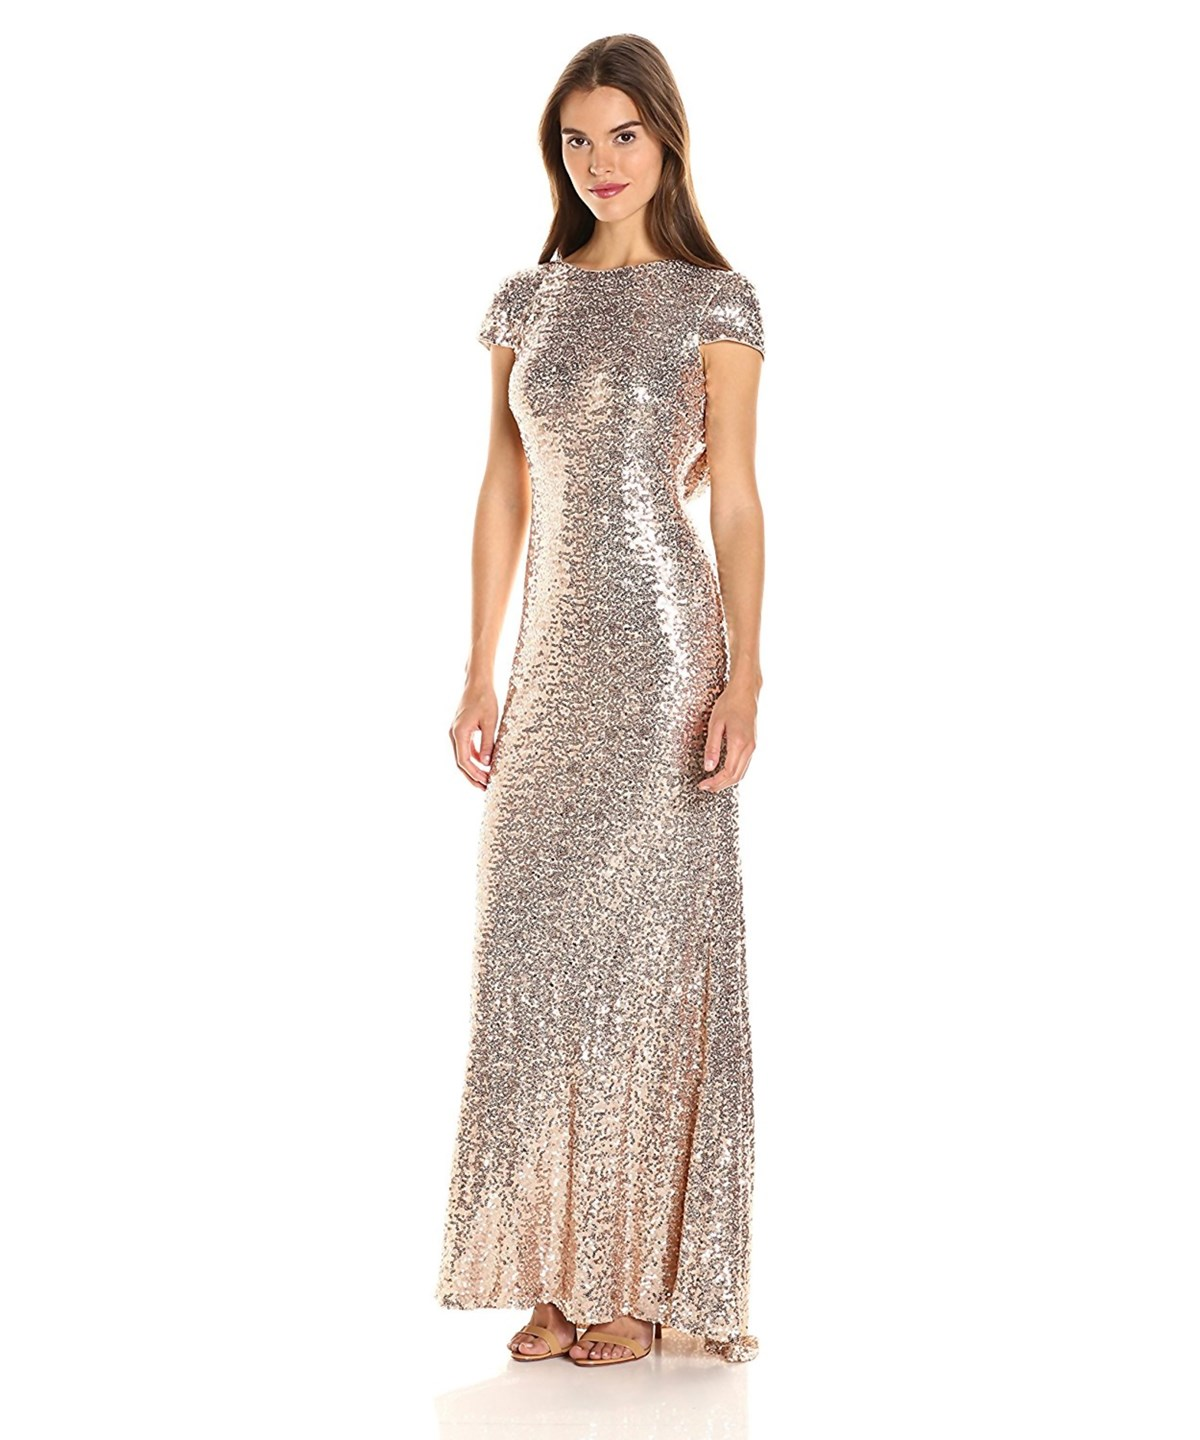 BADGLEY MISCHKA Blush Cap Sleeve Sequin Cowl Back Evening Gown' in Pink